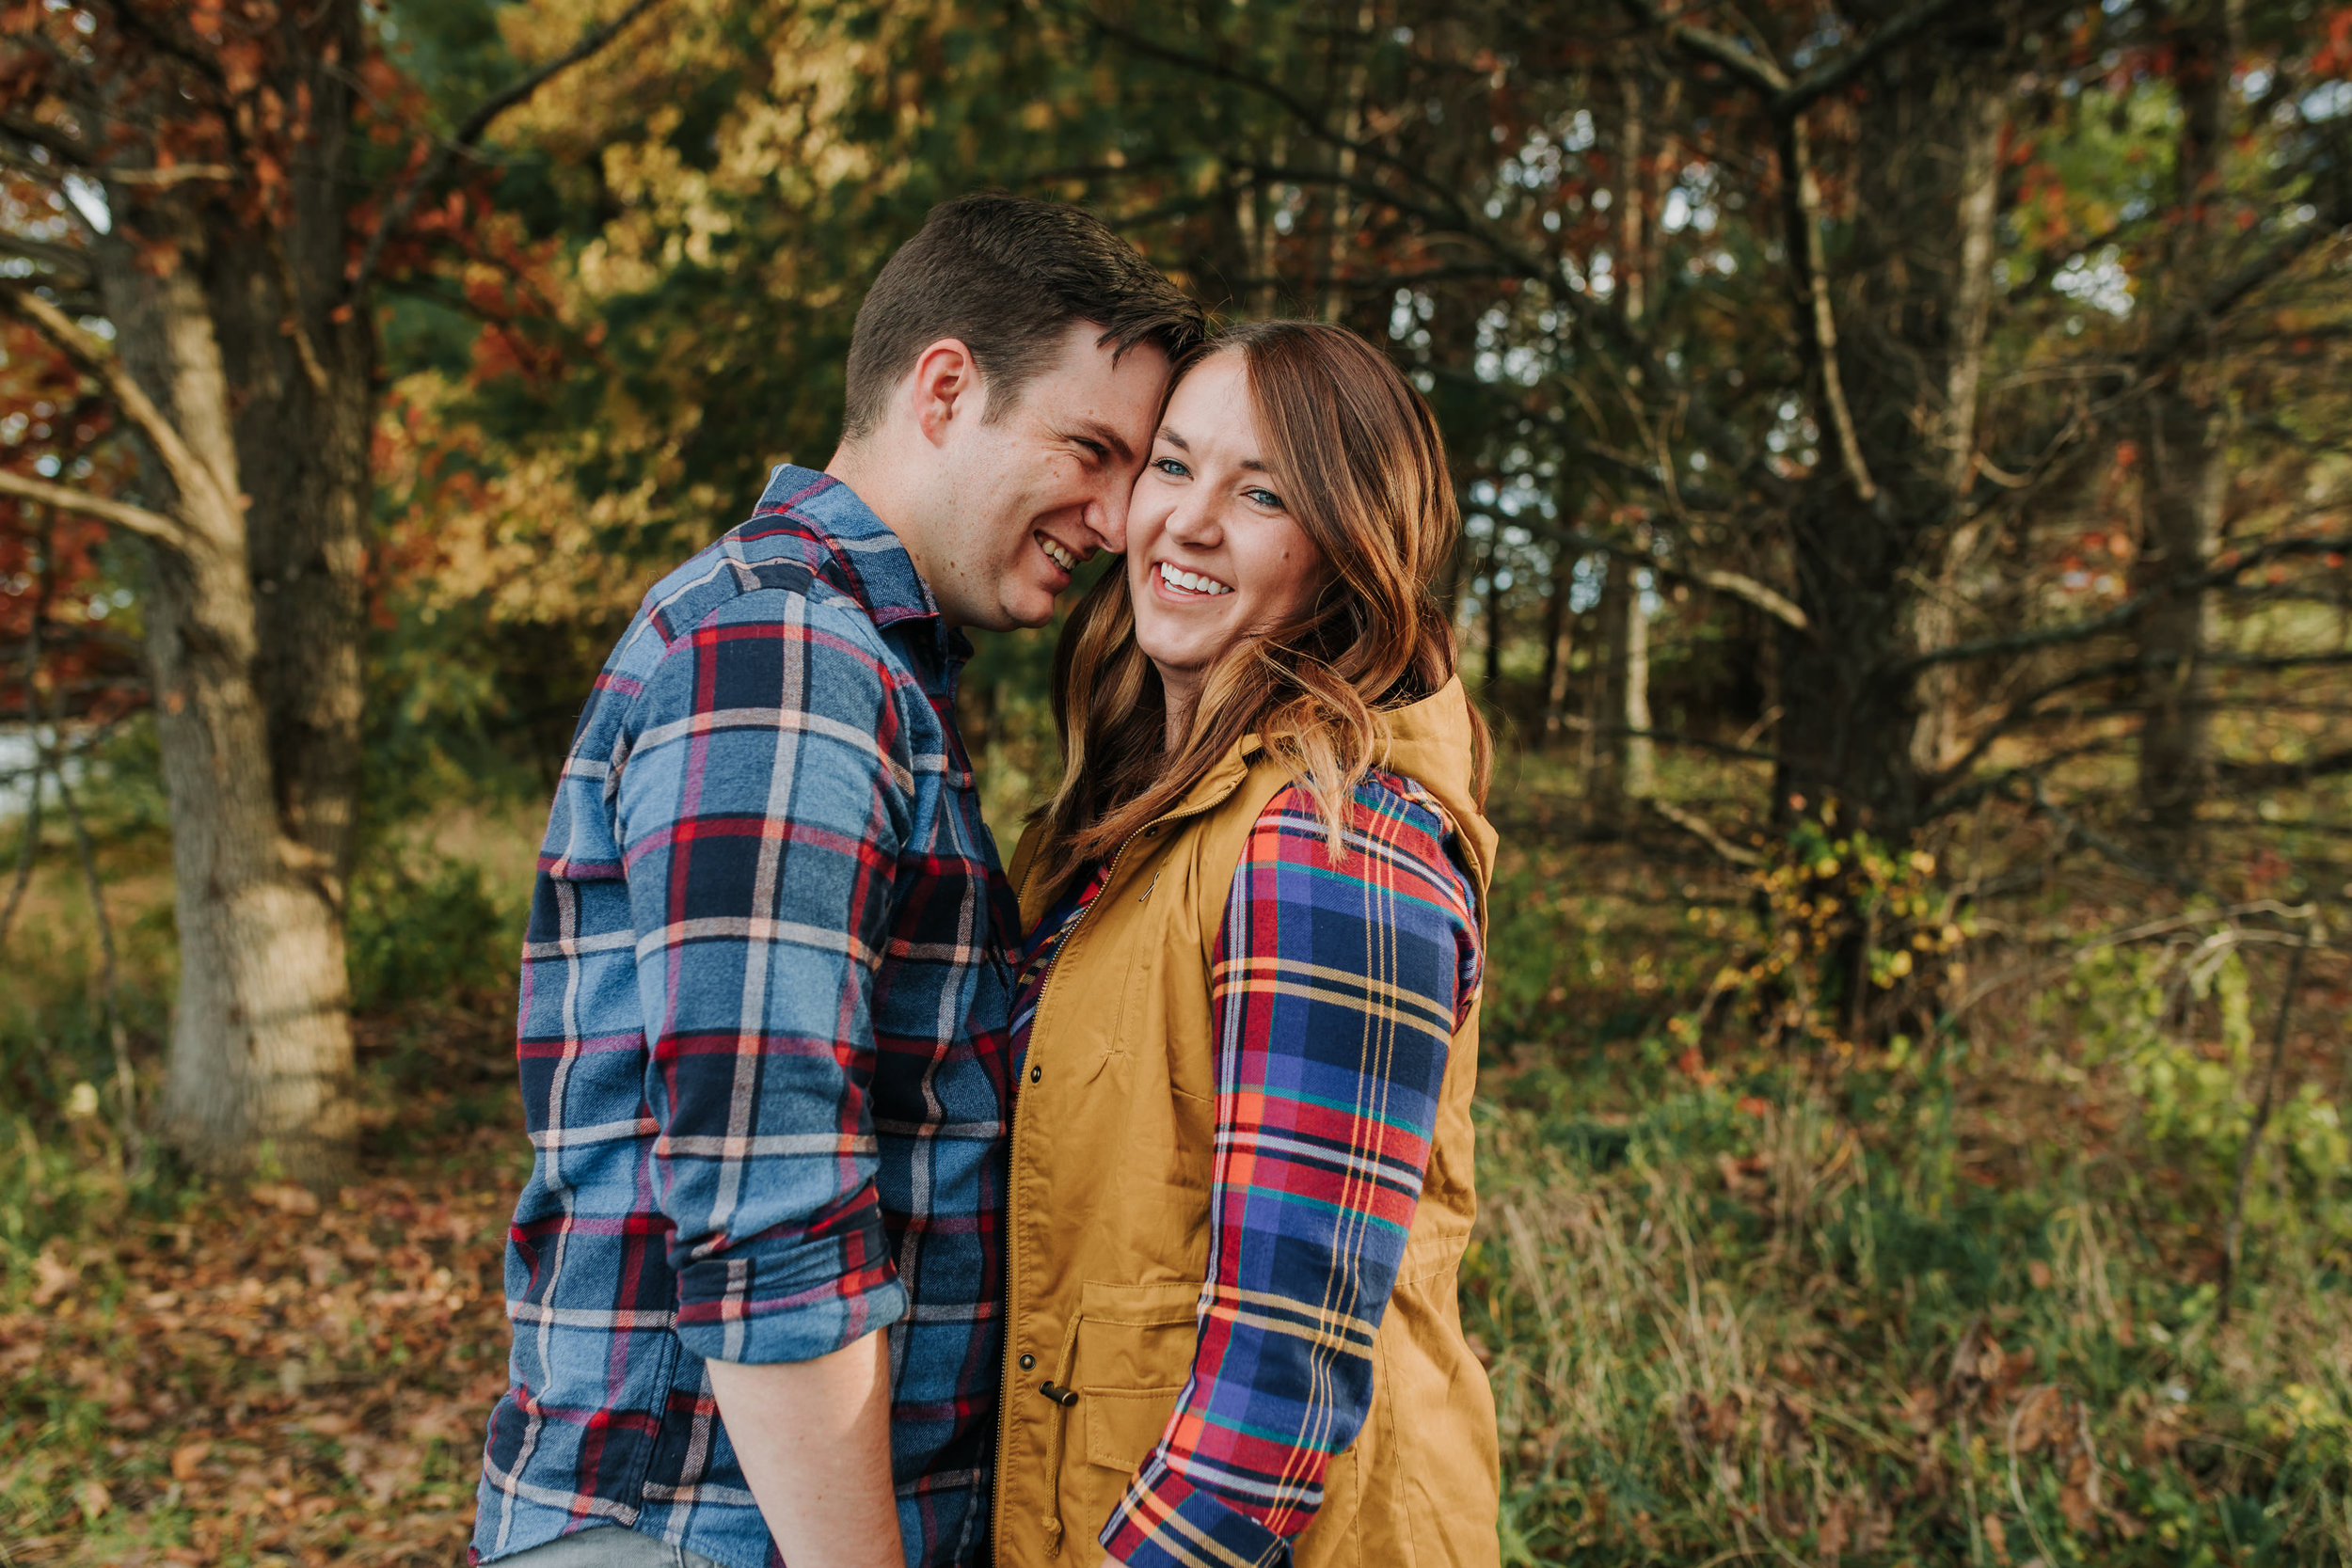 Katie & Adam - Engaged - Nathaniel Jensen Photography - Omaha Nebraska Wedding Photograper - Omaha Nebraska Engagement Session - Chalco Hills Engagement Session-37.jpg